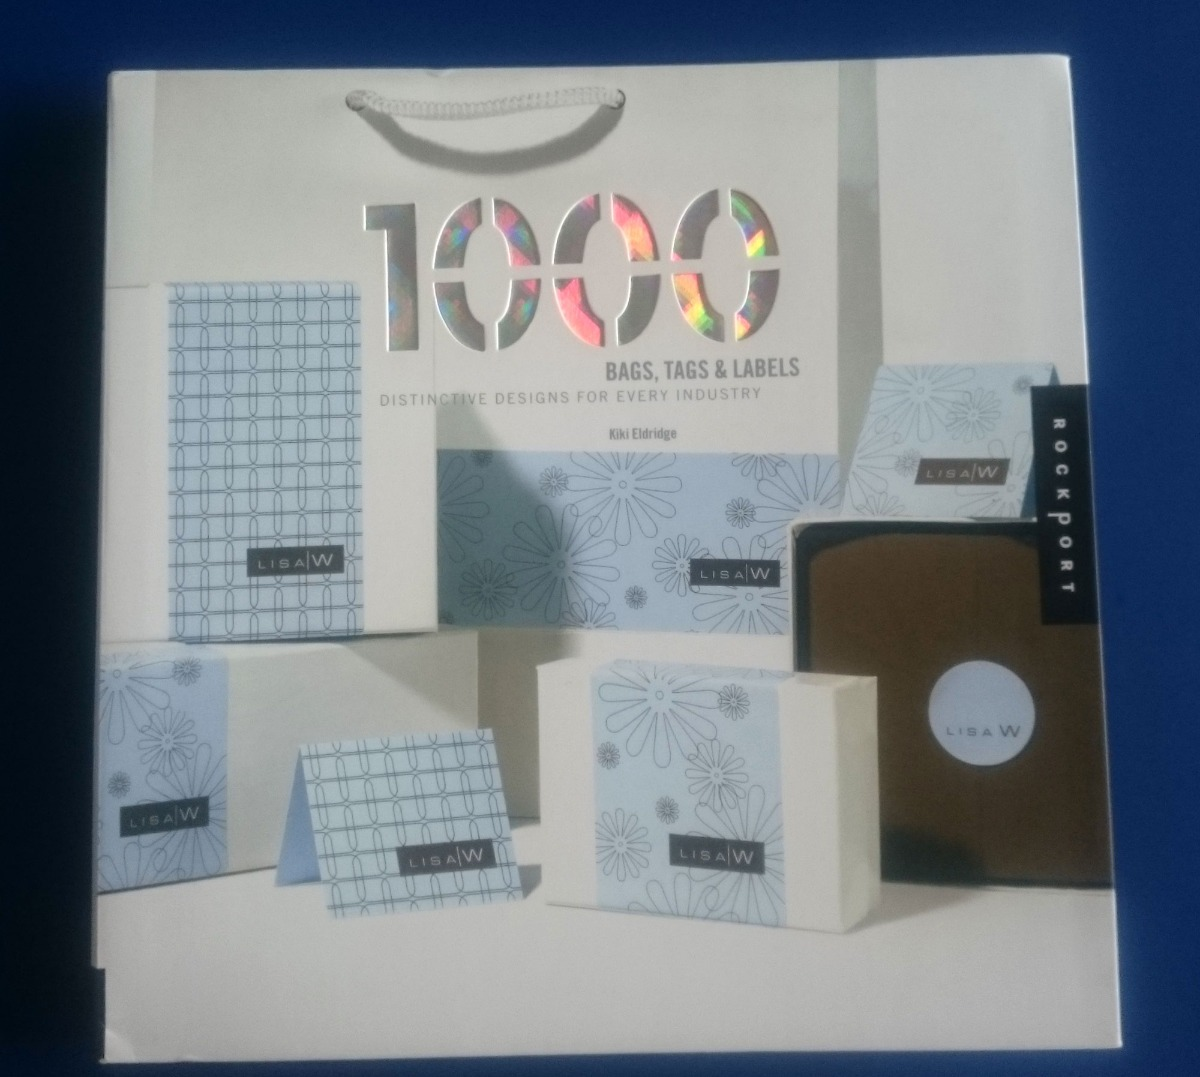 livro 1,000 bags, tags, and labels: distinctive designs... Carregando zoom.